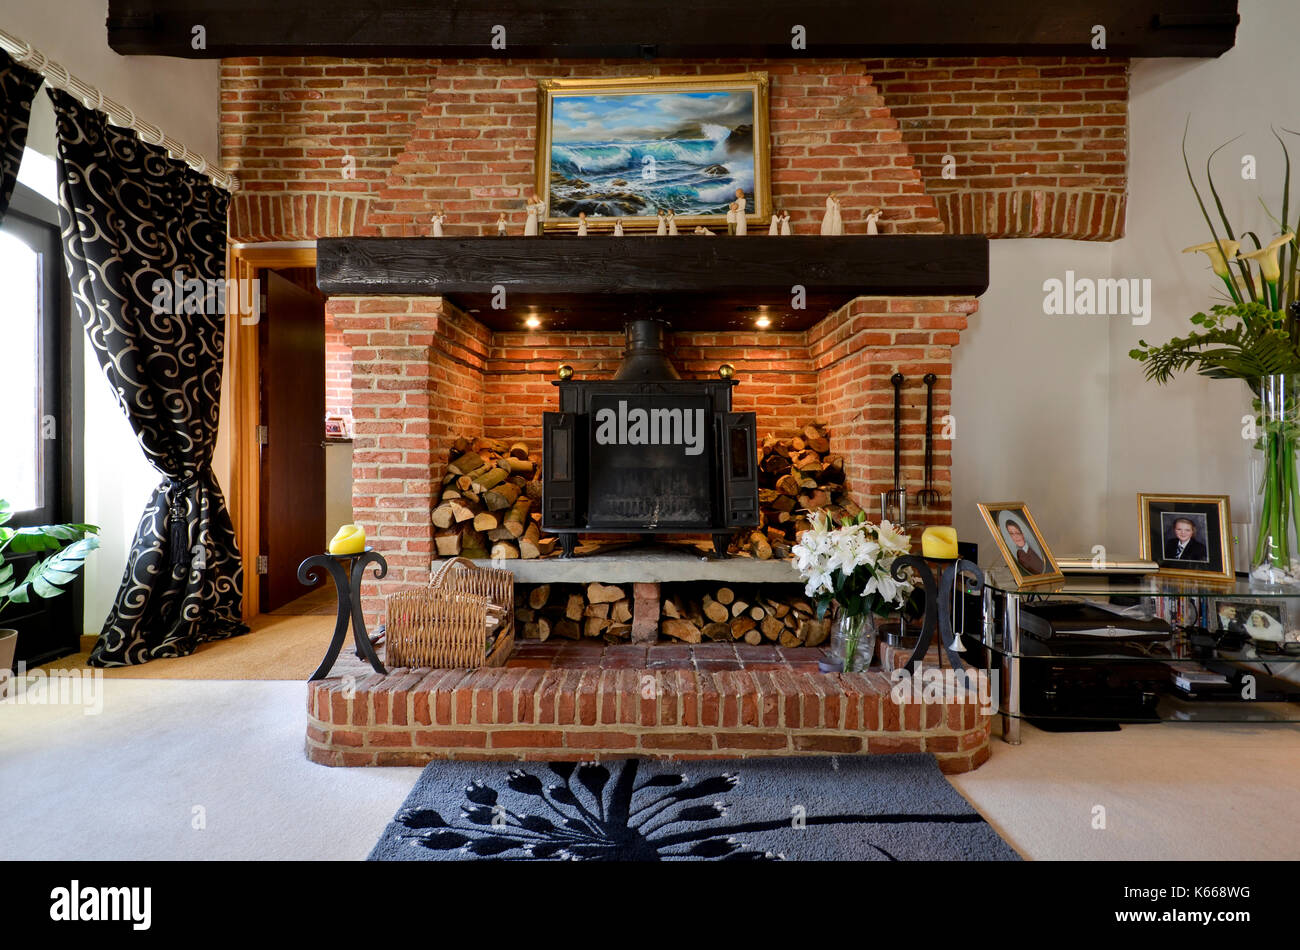 Large brick fireplace with exposed beams and wood burning stove Stock Photo